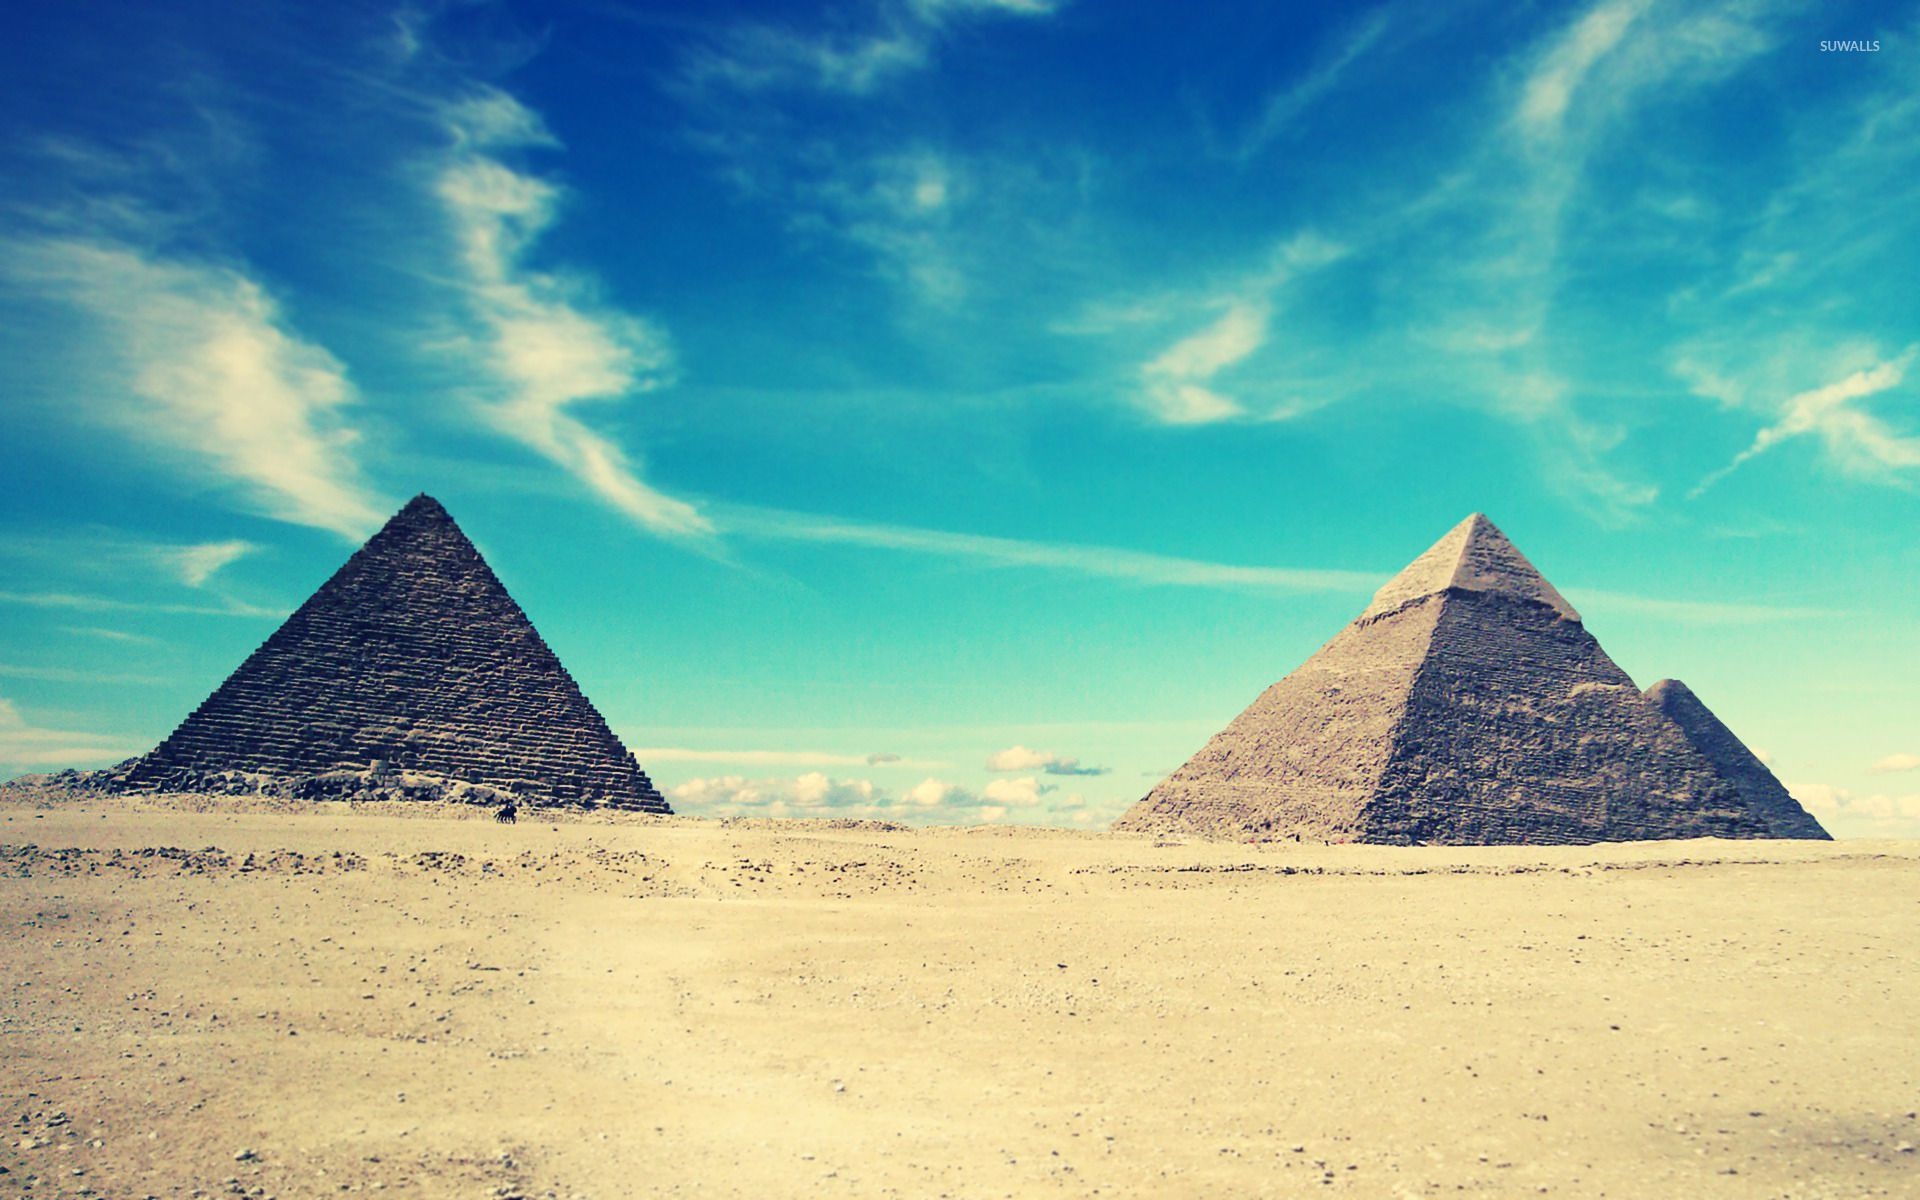 Top Collection of Pyramid Wallpapers Pyramid Wallpapers Pack V. | HD ...